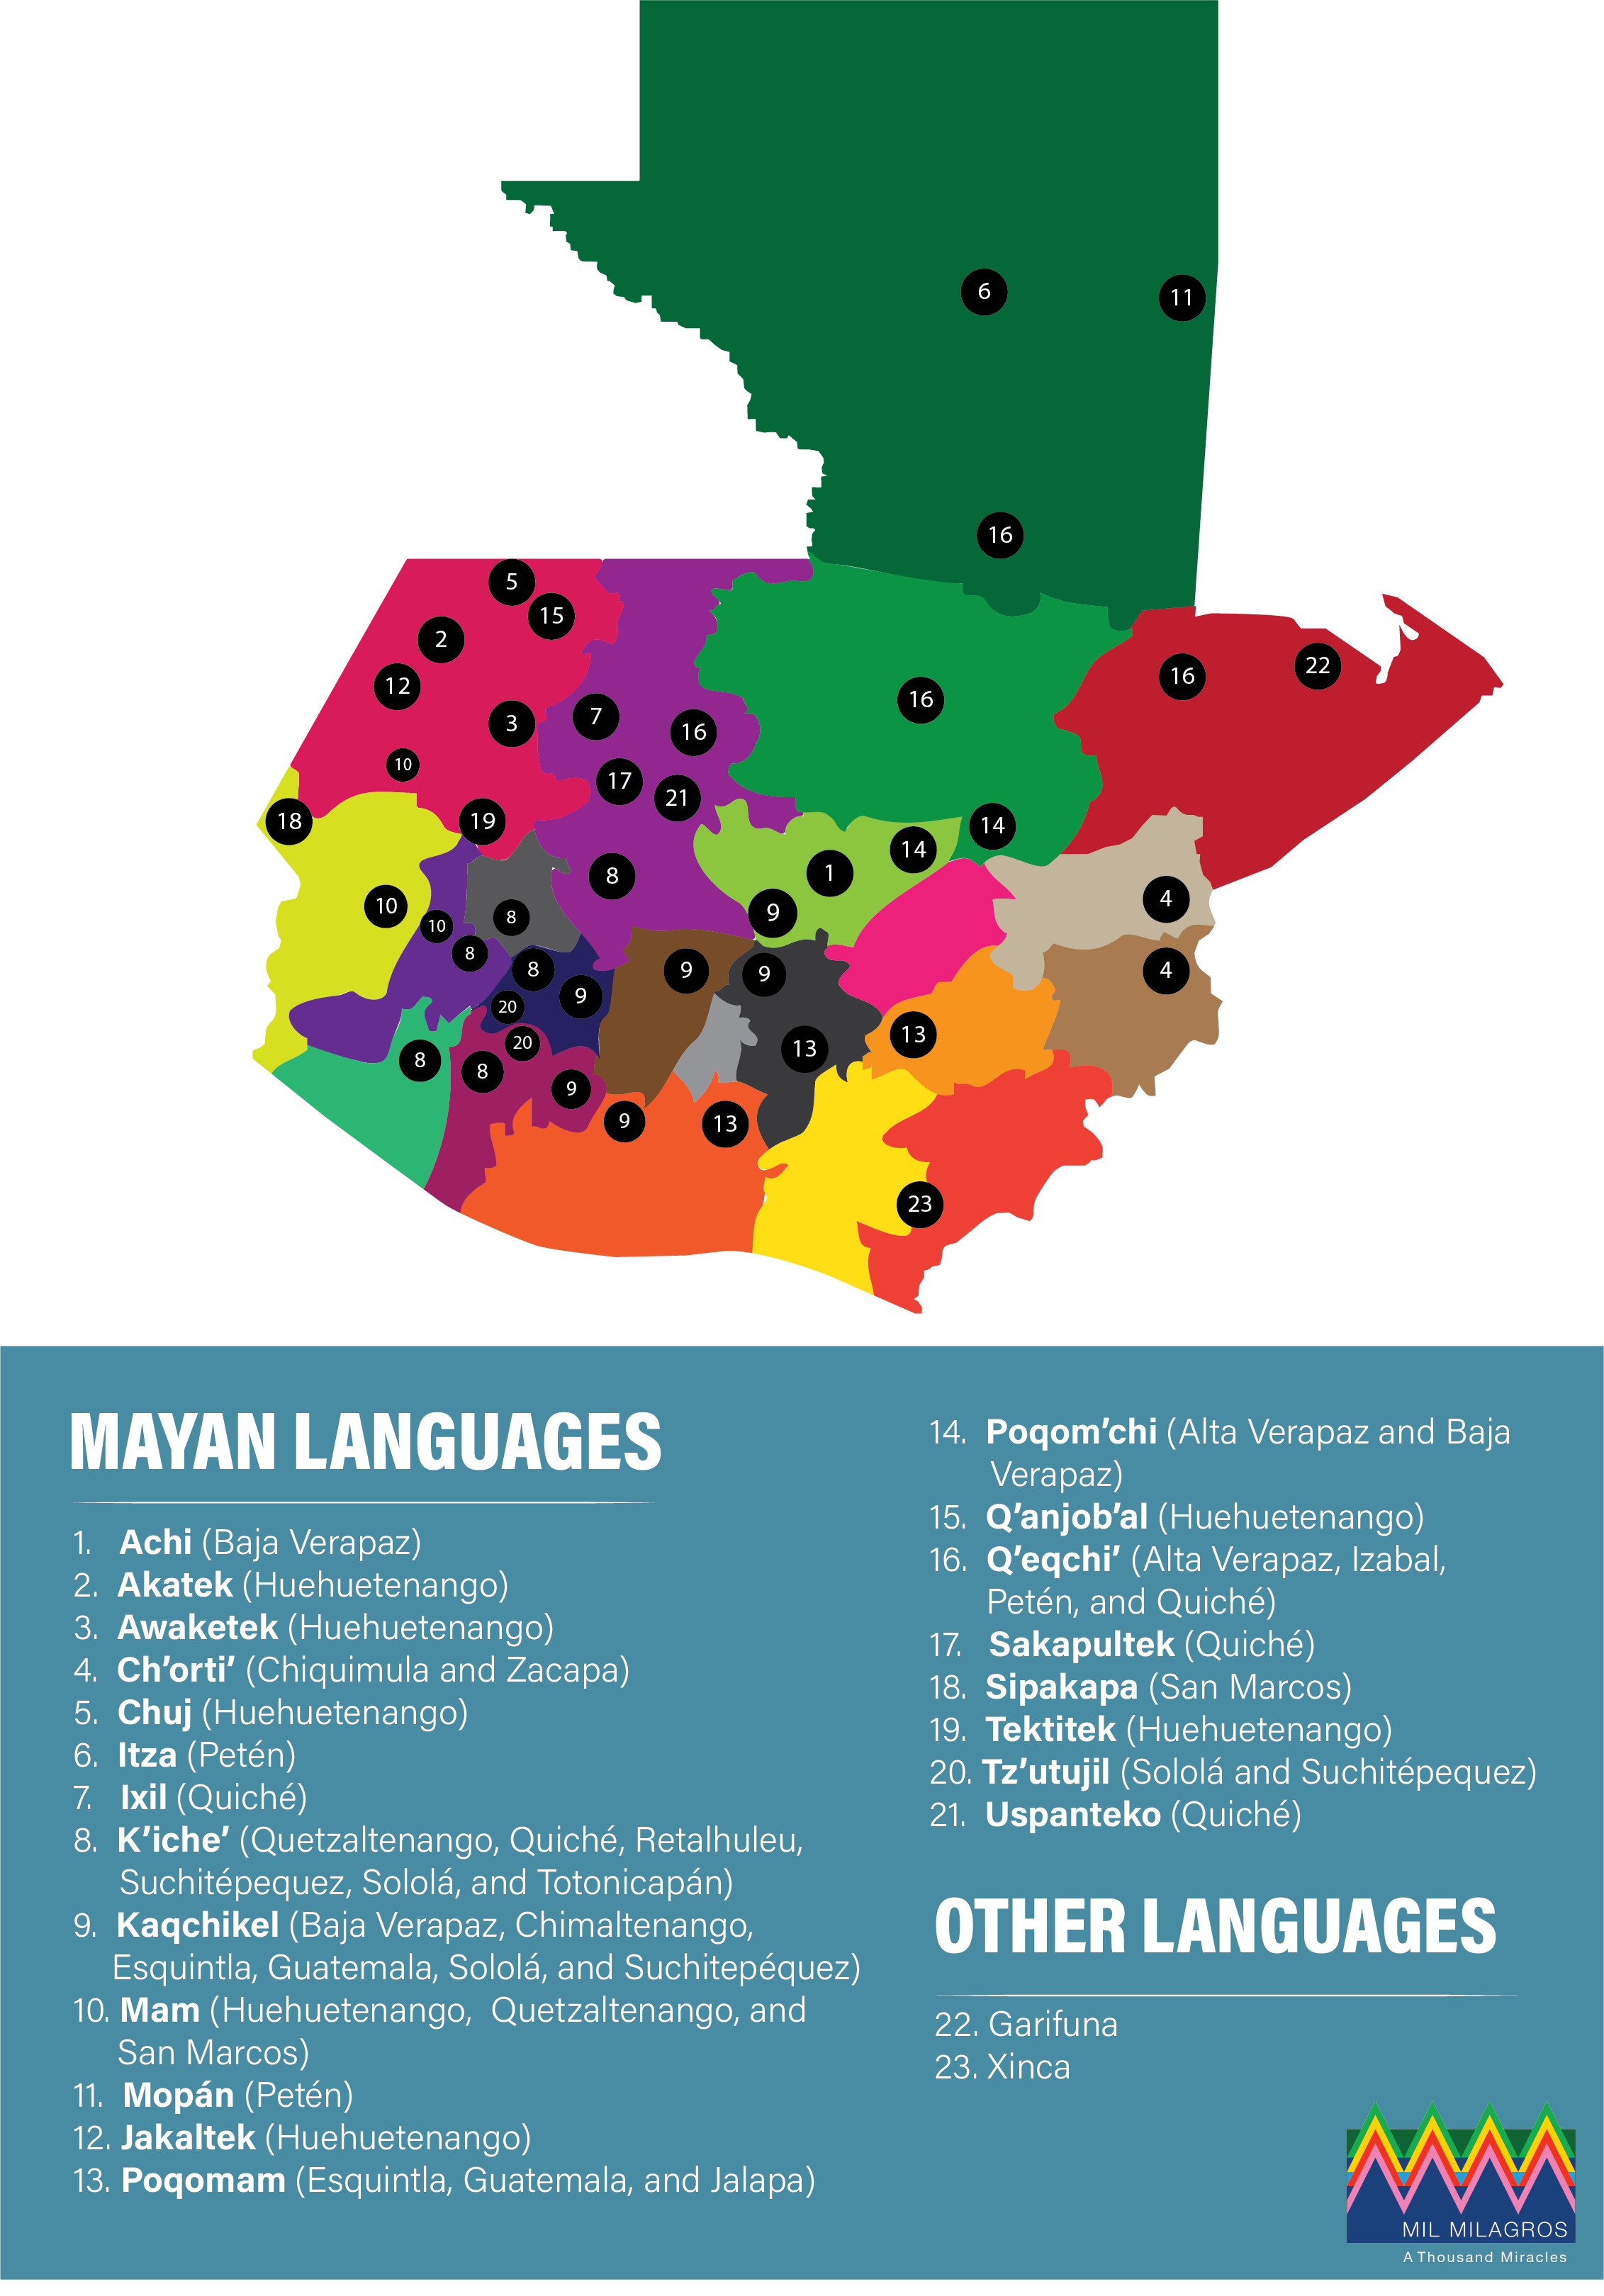 map indicating where indigenous languages are spoken in Guatemala